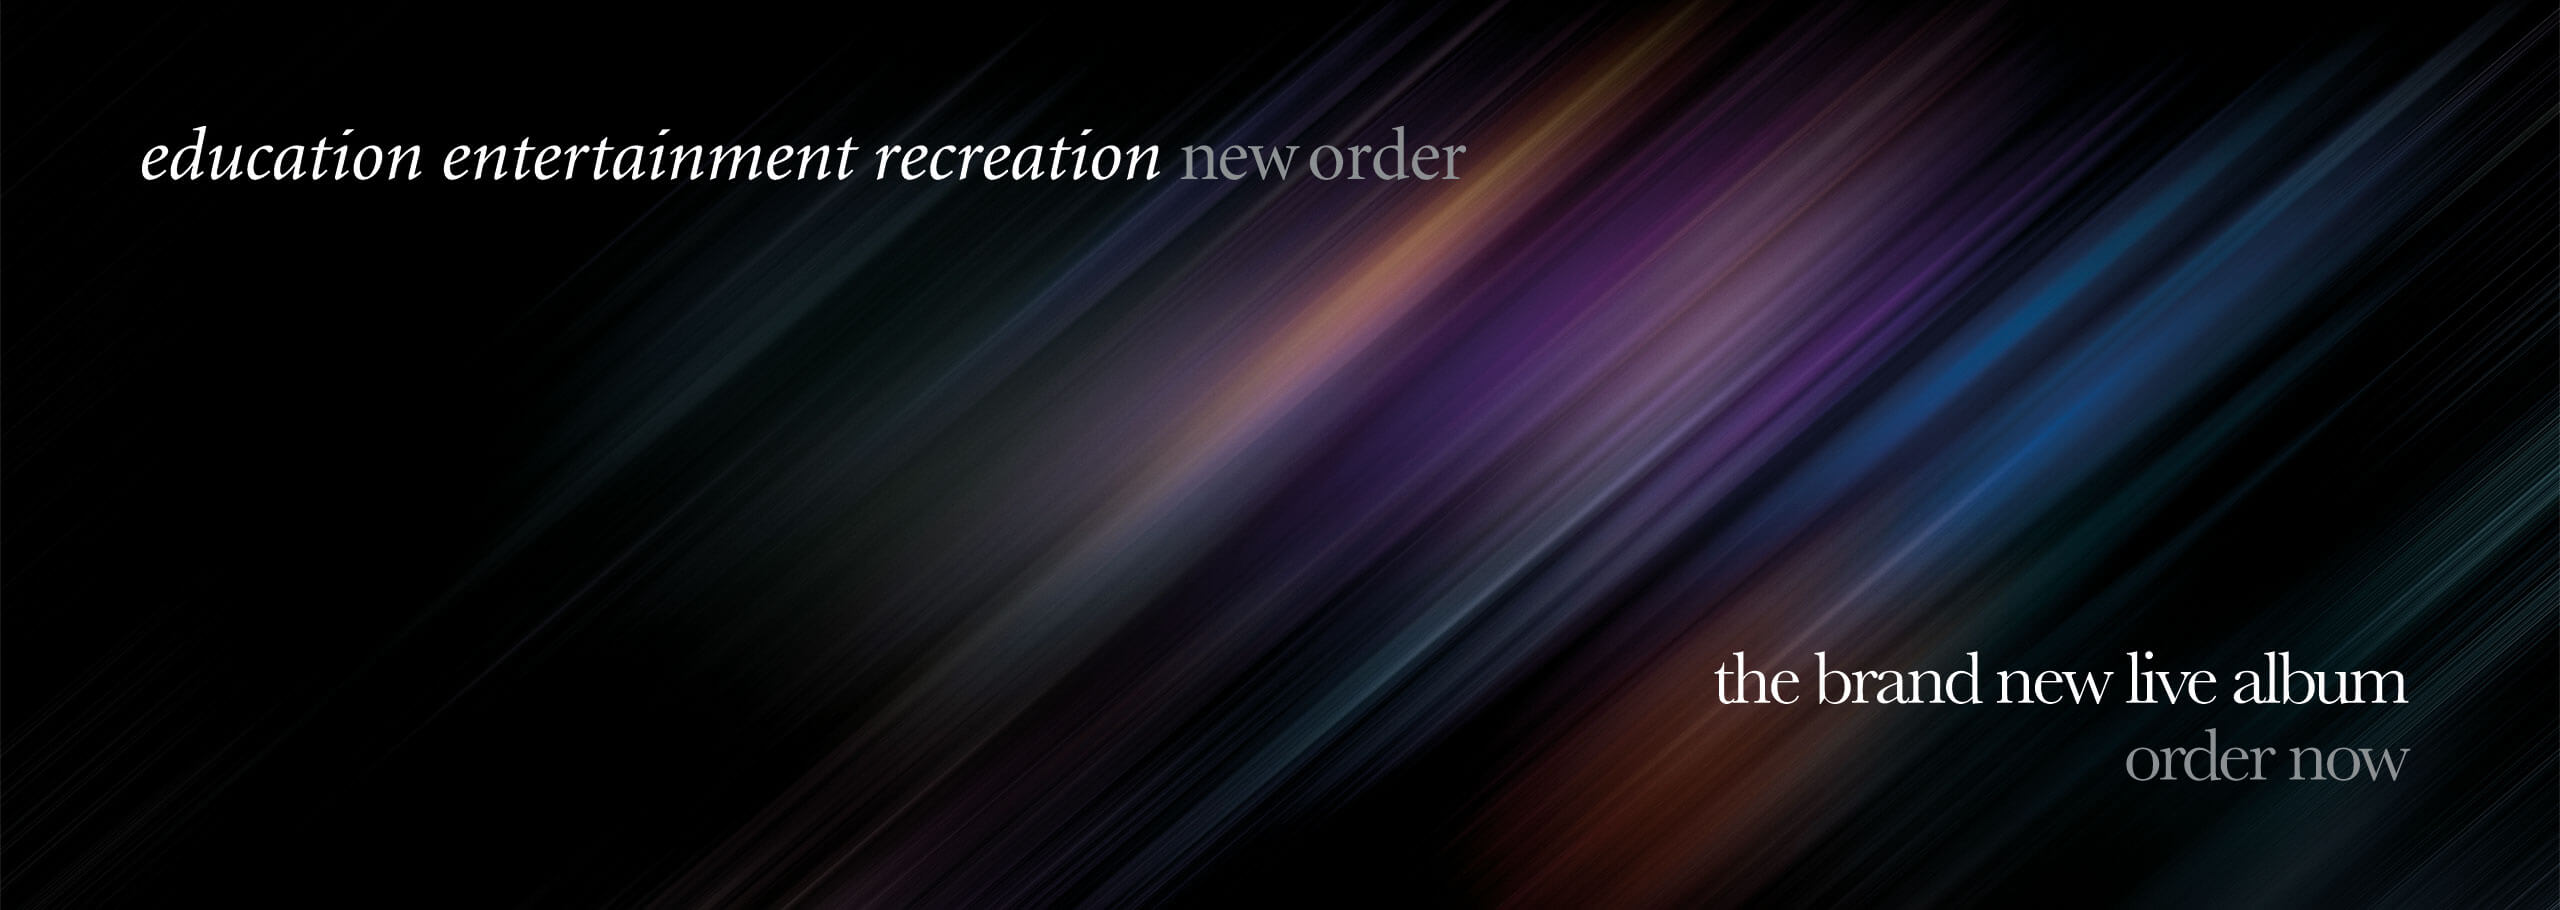 New Orders new album - education, entertainment, recreation. Buy now.